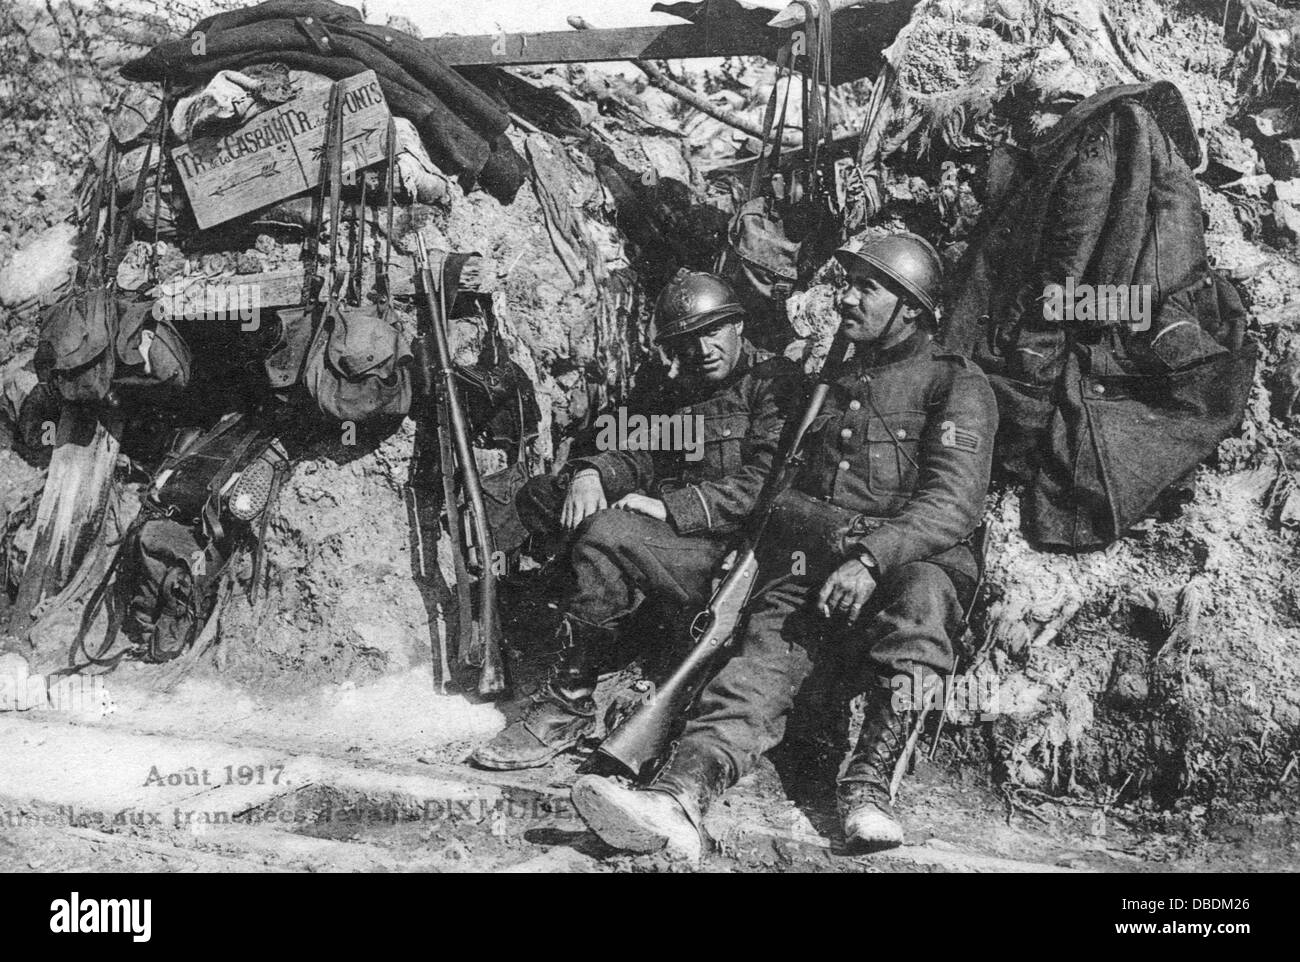 Belgian soldiers in a Great War trench - Stock Image